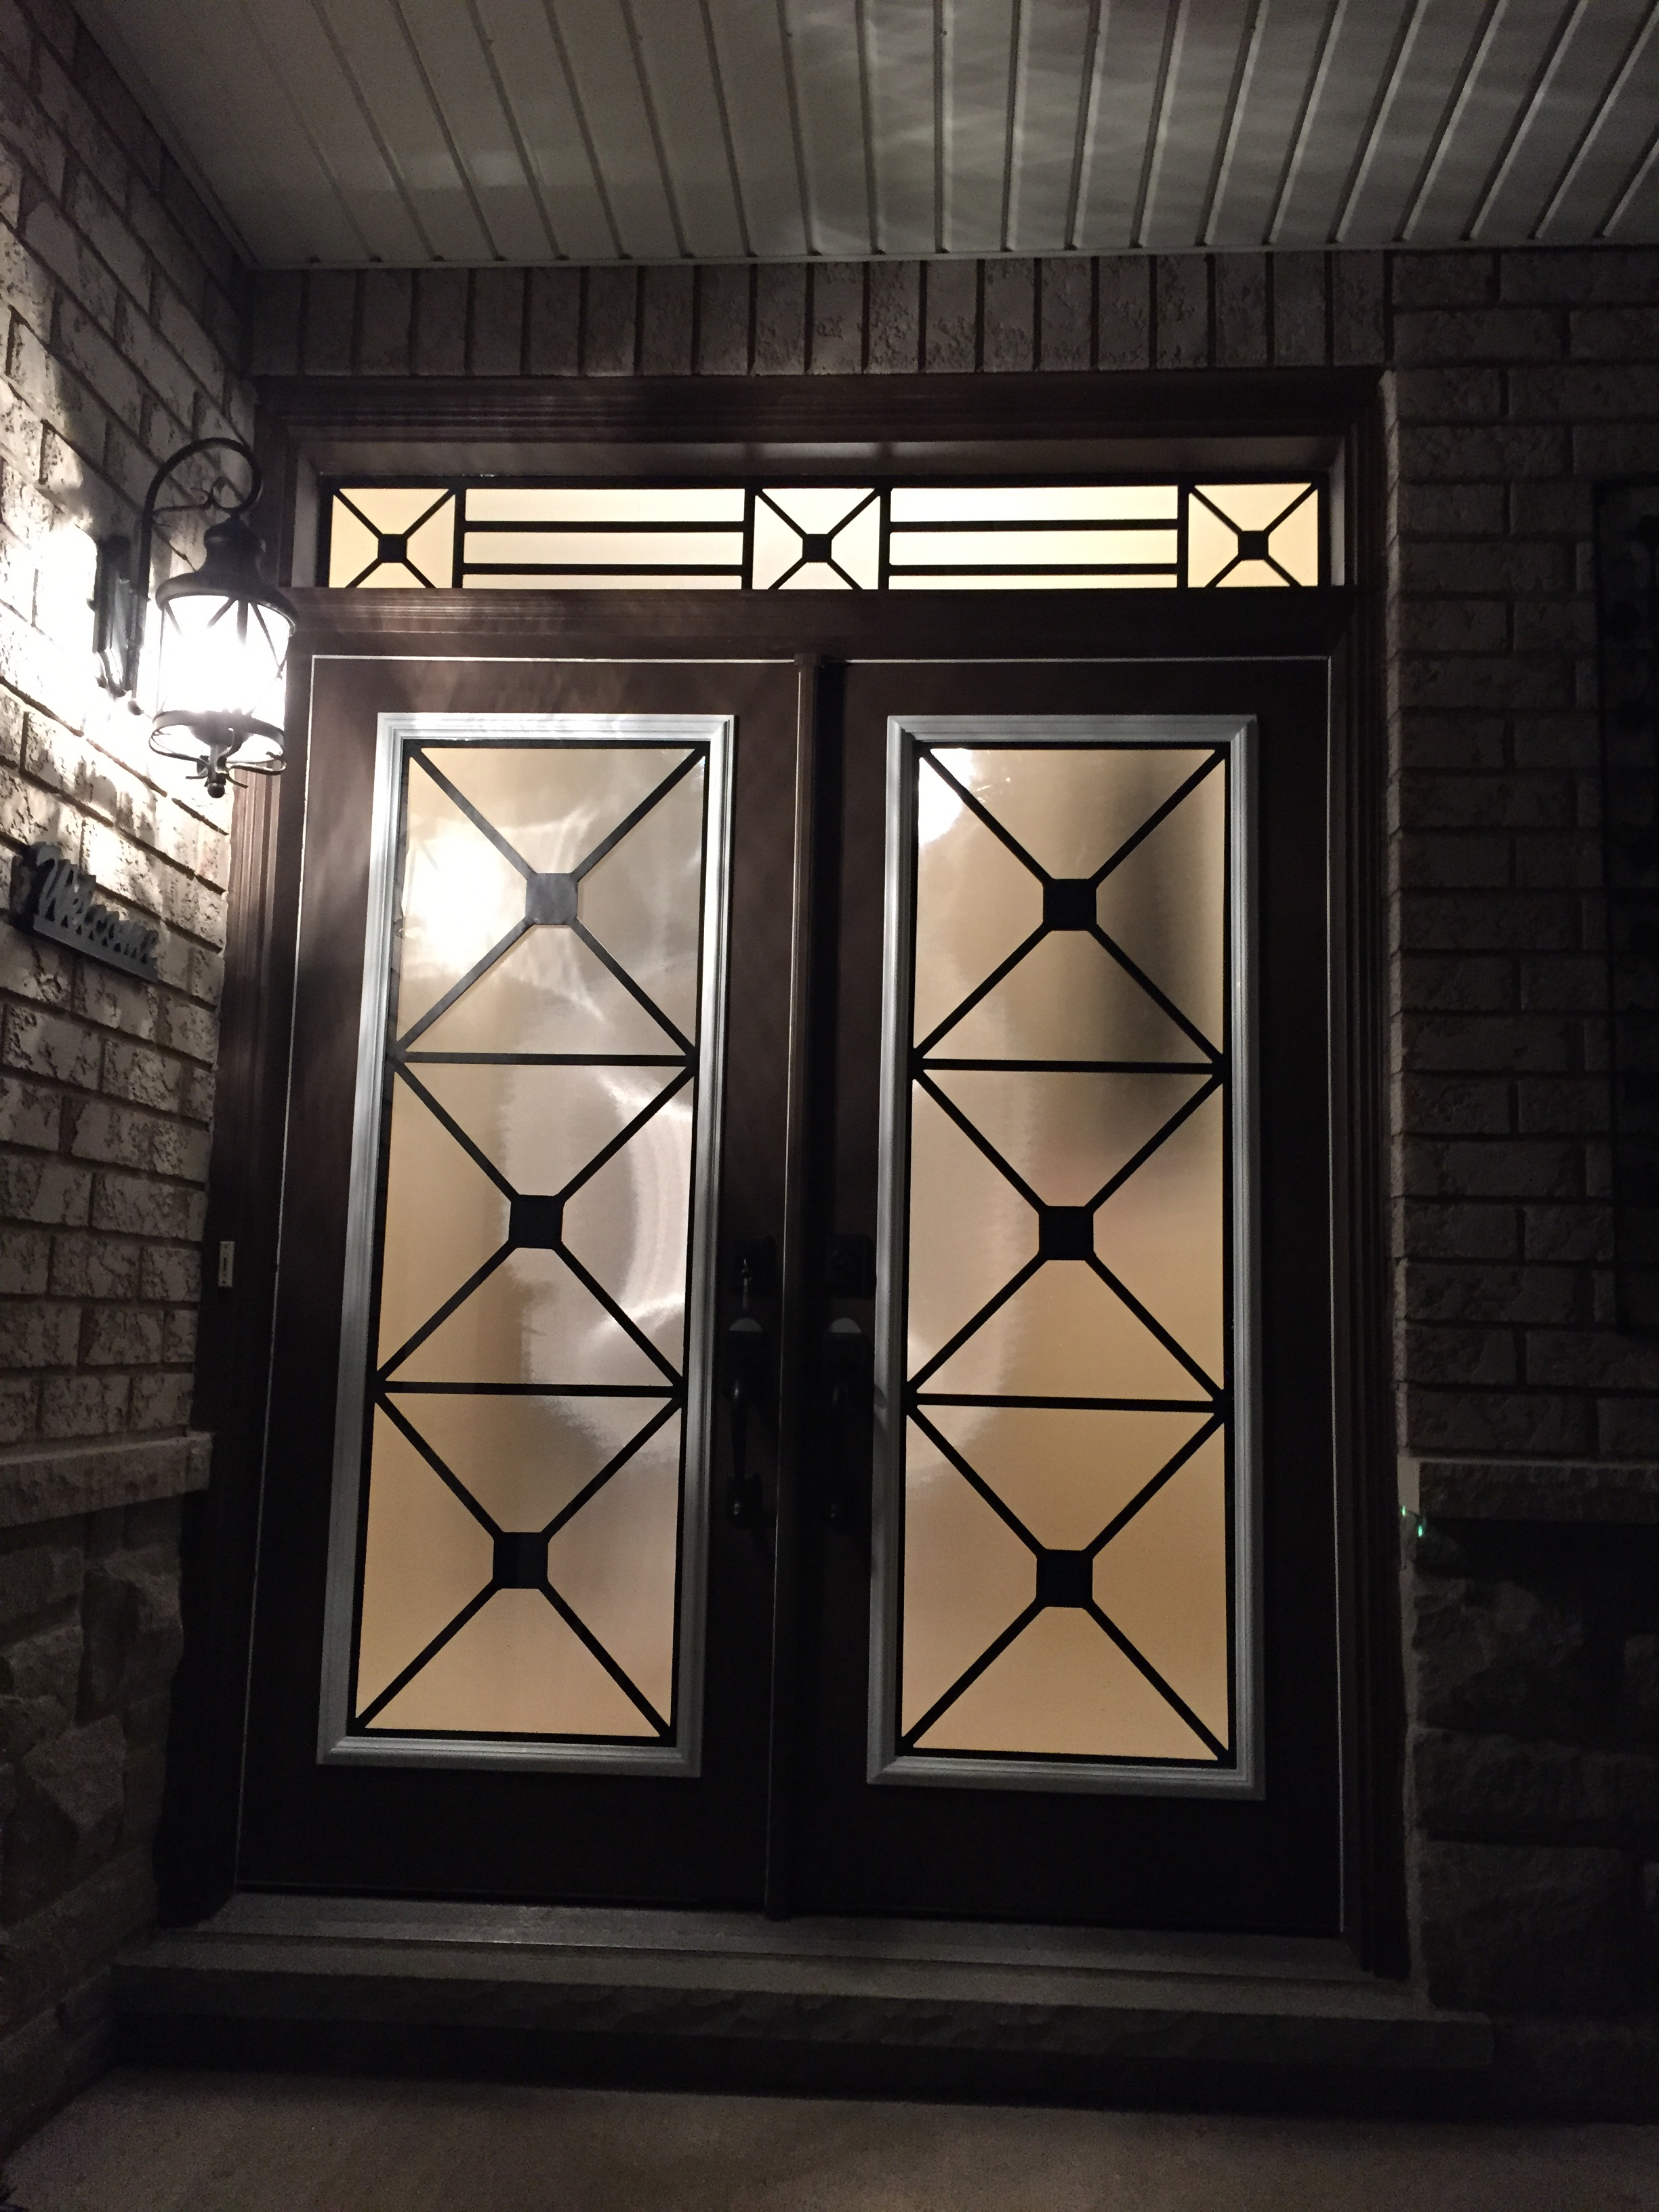 x-design-wrought-iron-glass-door-insert-bradford-on